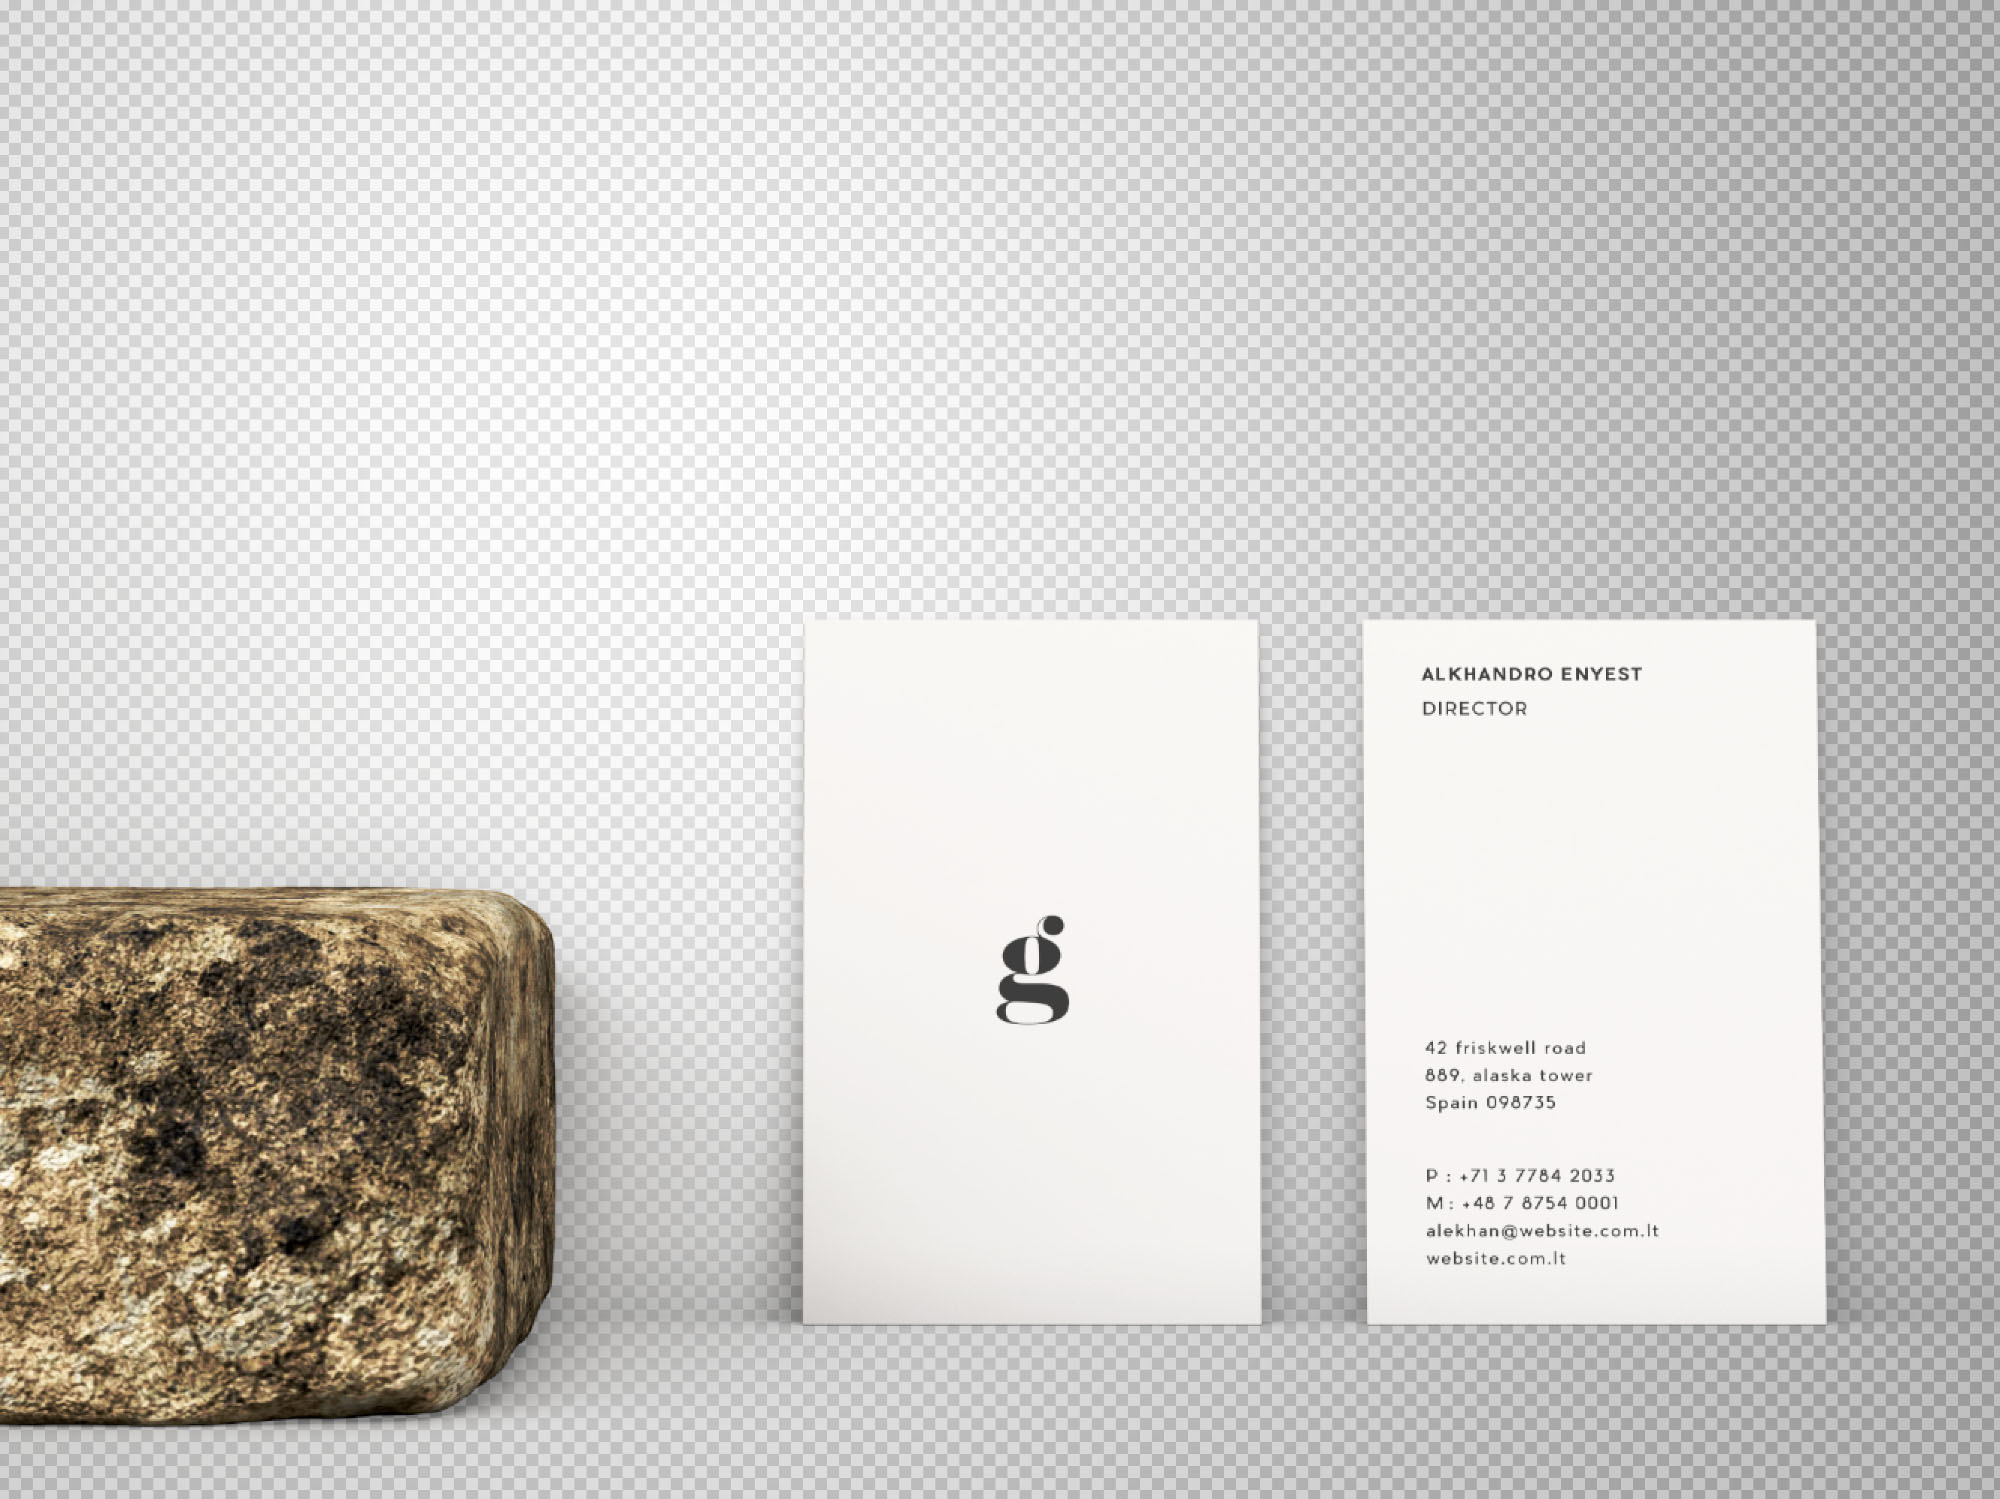 Vertical Business Card Mockup - Transparent